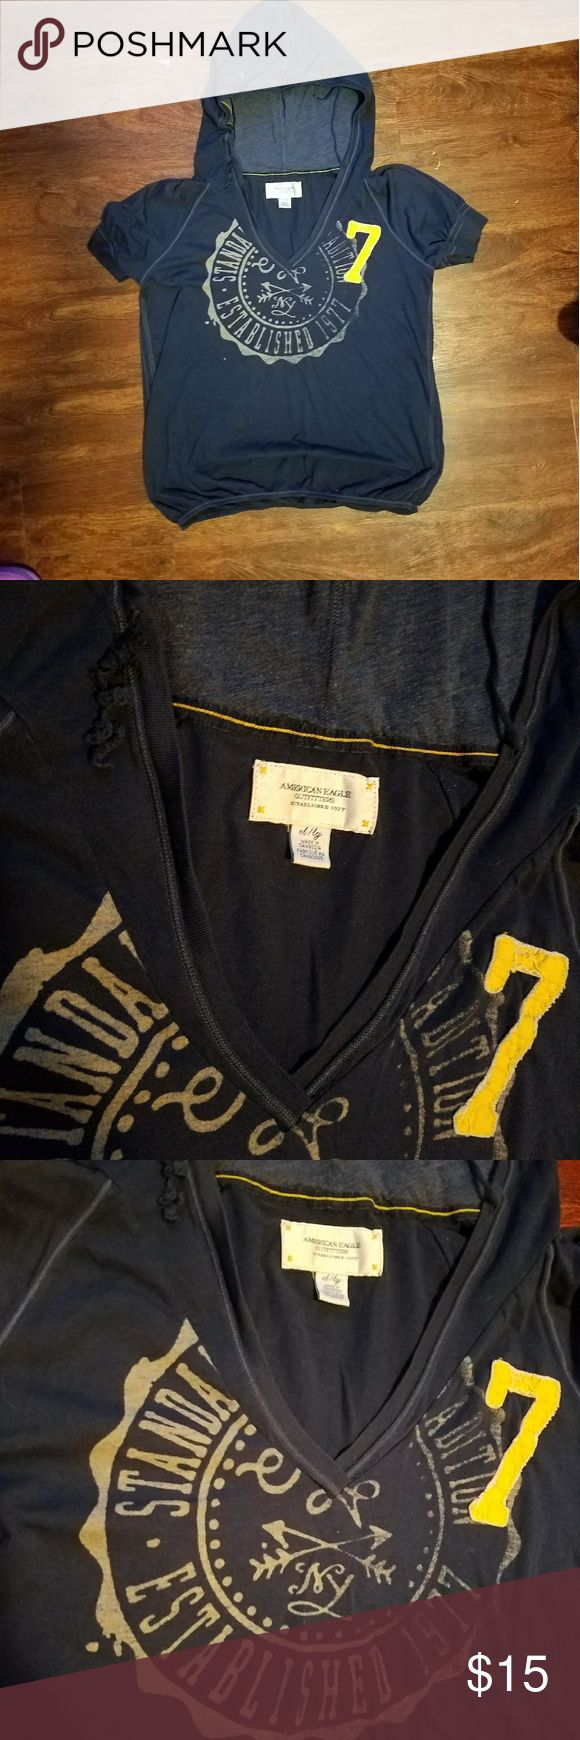 AE American Eagle hoodie tshirt XL womens Stay cute and stylish this summer with this Women's xl American eagle shirt.  Discounts on bundles  Feel free to make a reasonable offer American Eagle Outfitters Tops Tees - Short Sleeve